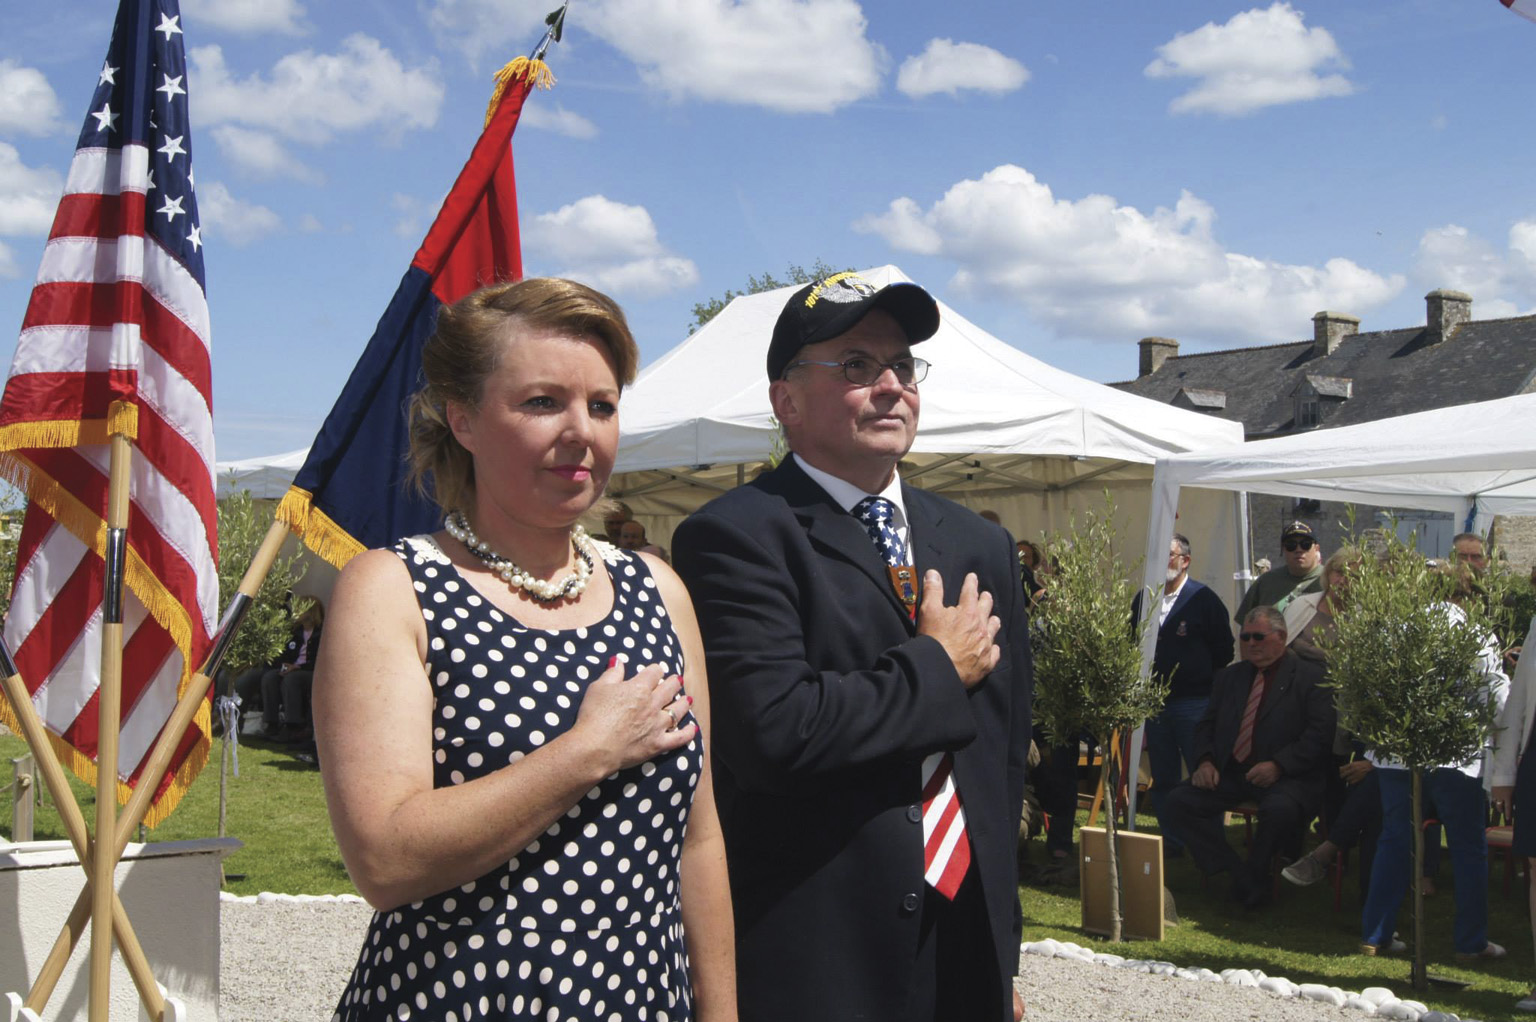 David Ashe and his partner, Céline Schwab Lautour, organize the annual ceremony at the Ravenoville Eternal Heroes Memorial. Ashe, the founder of the monument, believes in peace and reconciliation and flies both the U.S. and German flags.